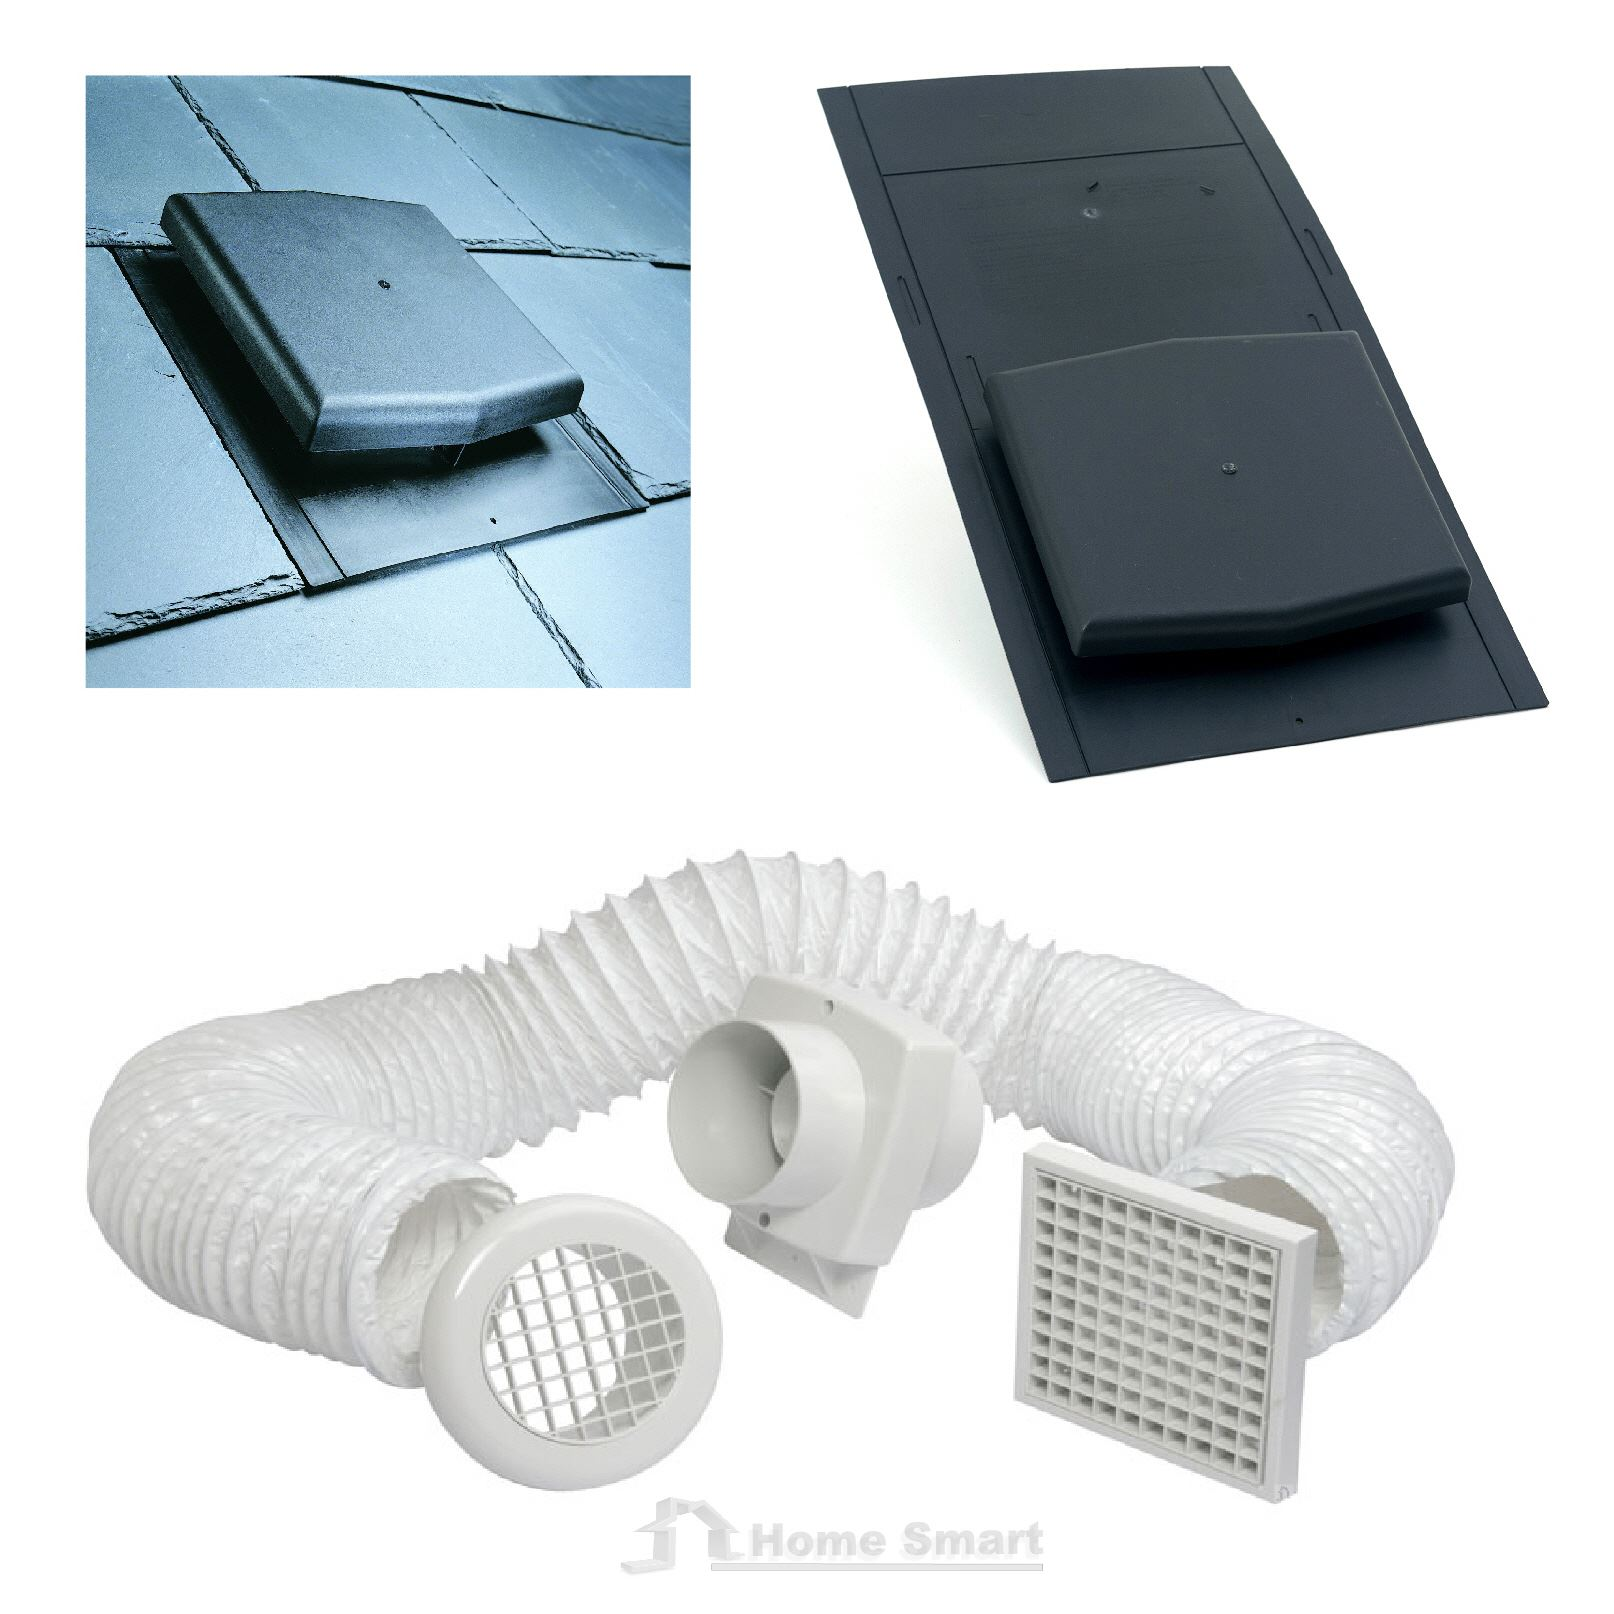 Slate roof tile vent inline timer extractor shower fan for 2 bathroom exhaust fan venting